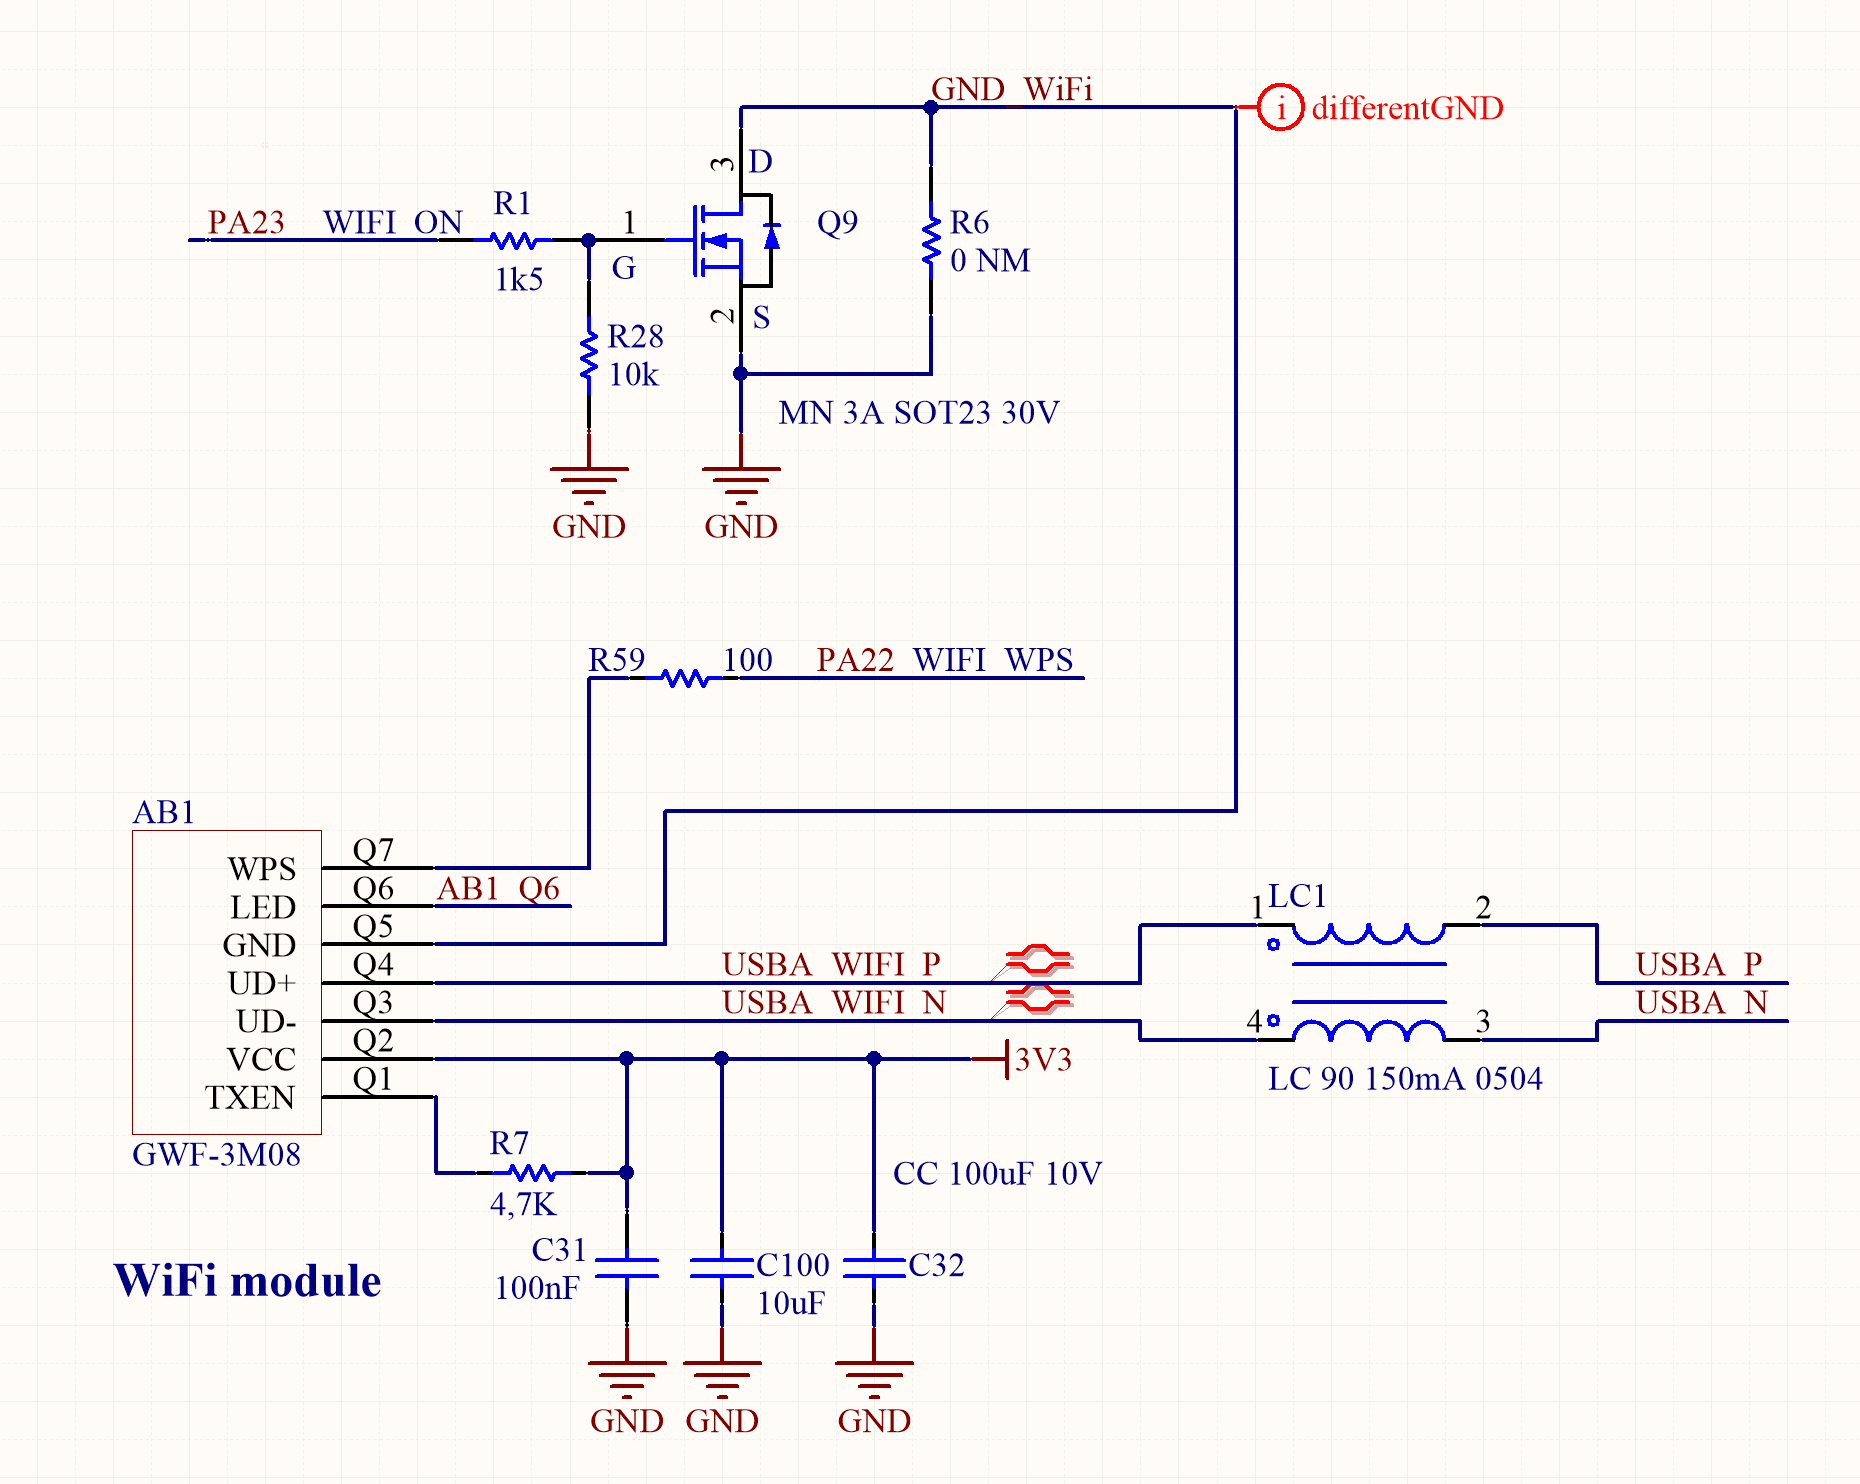 How to design the USB circuitry Usb Flash Color Wiring Diagram on usb wire diagram, midi to usb wiring-diagram, gps wiring-diagram, usb to ps2 wiring-diagram, ide to usb wiring-diagram, usb headset wiring diagram, usb to rs232 wiring-diagram, usb 3.1 type-c connector, usb to rj45 wiring-diagram, usb keyboard wiring-diagram, mini usb wiring-diagram, usb connections diagram, sub wiring-diagram, headphone wiring-diagram, powerflex 753 wiring-diagram, usb cable diagram, micro usb wiring-diagram, e4od wiring-diagram, usb 2.0 diagram, sata to usb wiring-diagram,